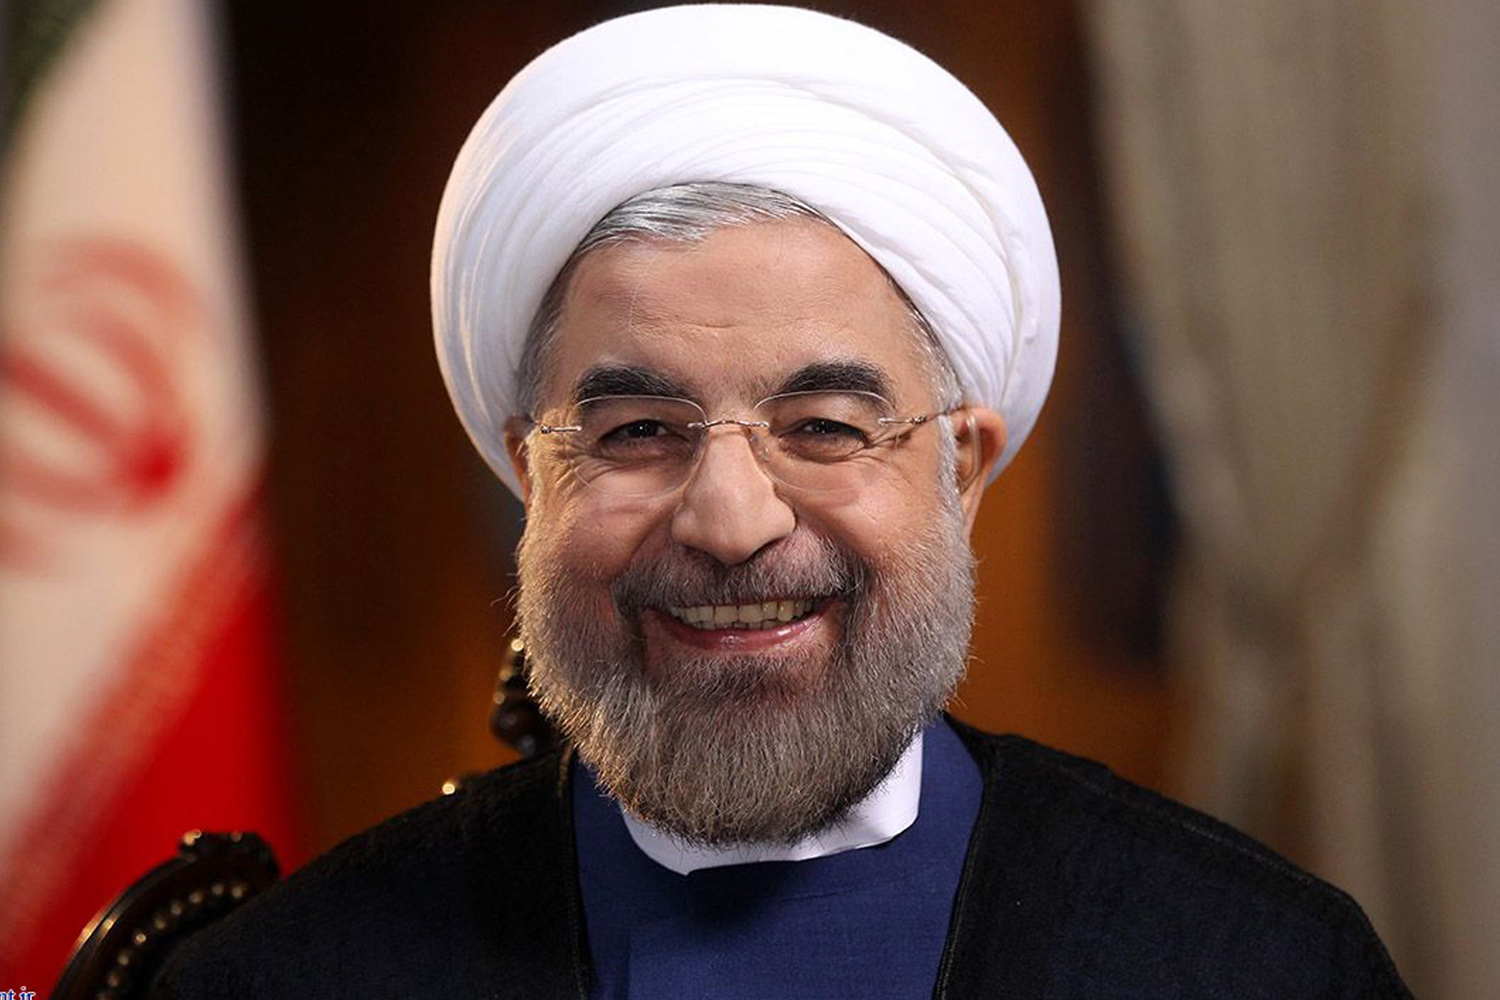 Iranian President Hassan Rouhani smiles during an interview with Ann Curry from the U.S. television network NBC in Tehran, in this picture taken September 18, 2013, and provided by the Iranian Presidency. Rouhani said in the television interview with NBC News on Wednesday that his government would never develop nuclear weapons and that he had